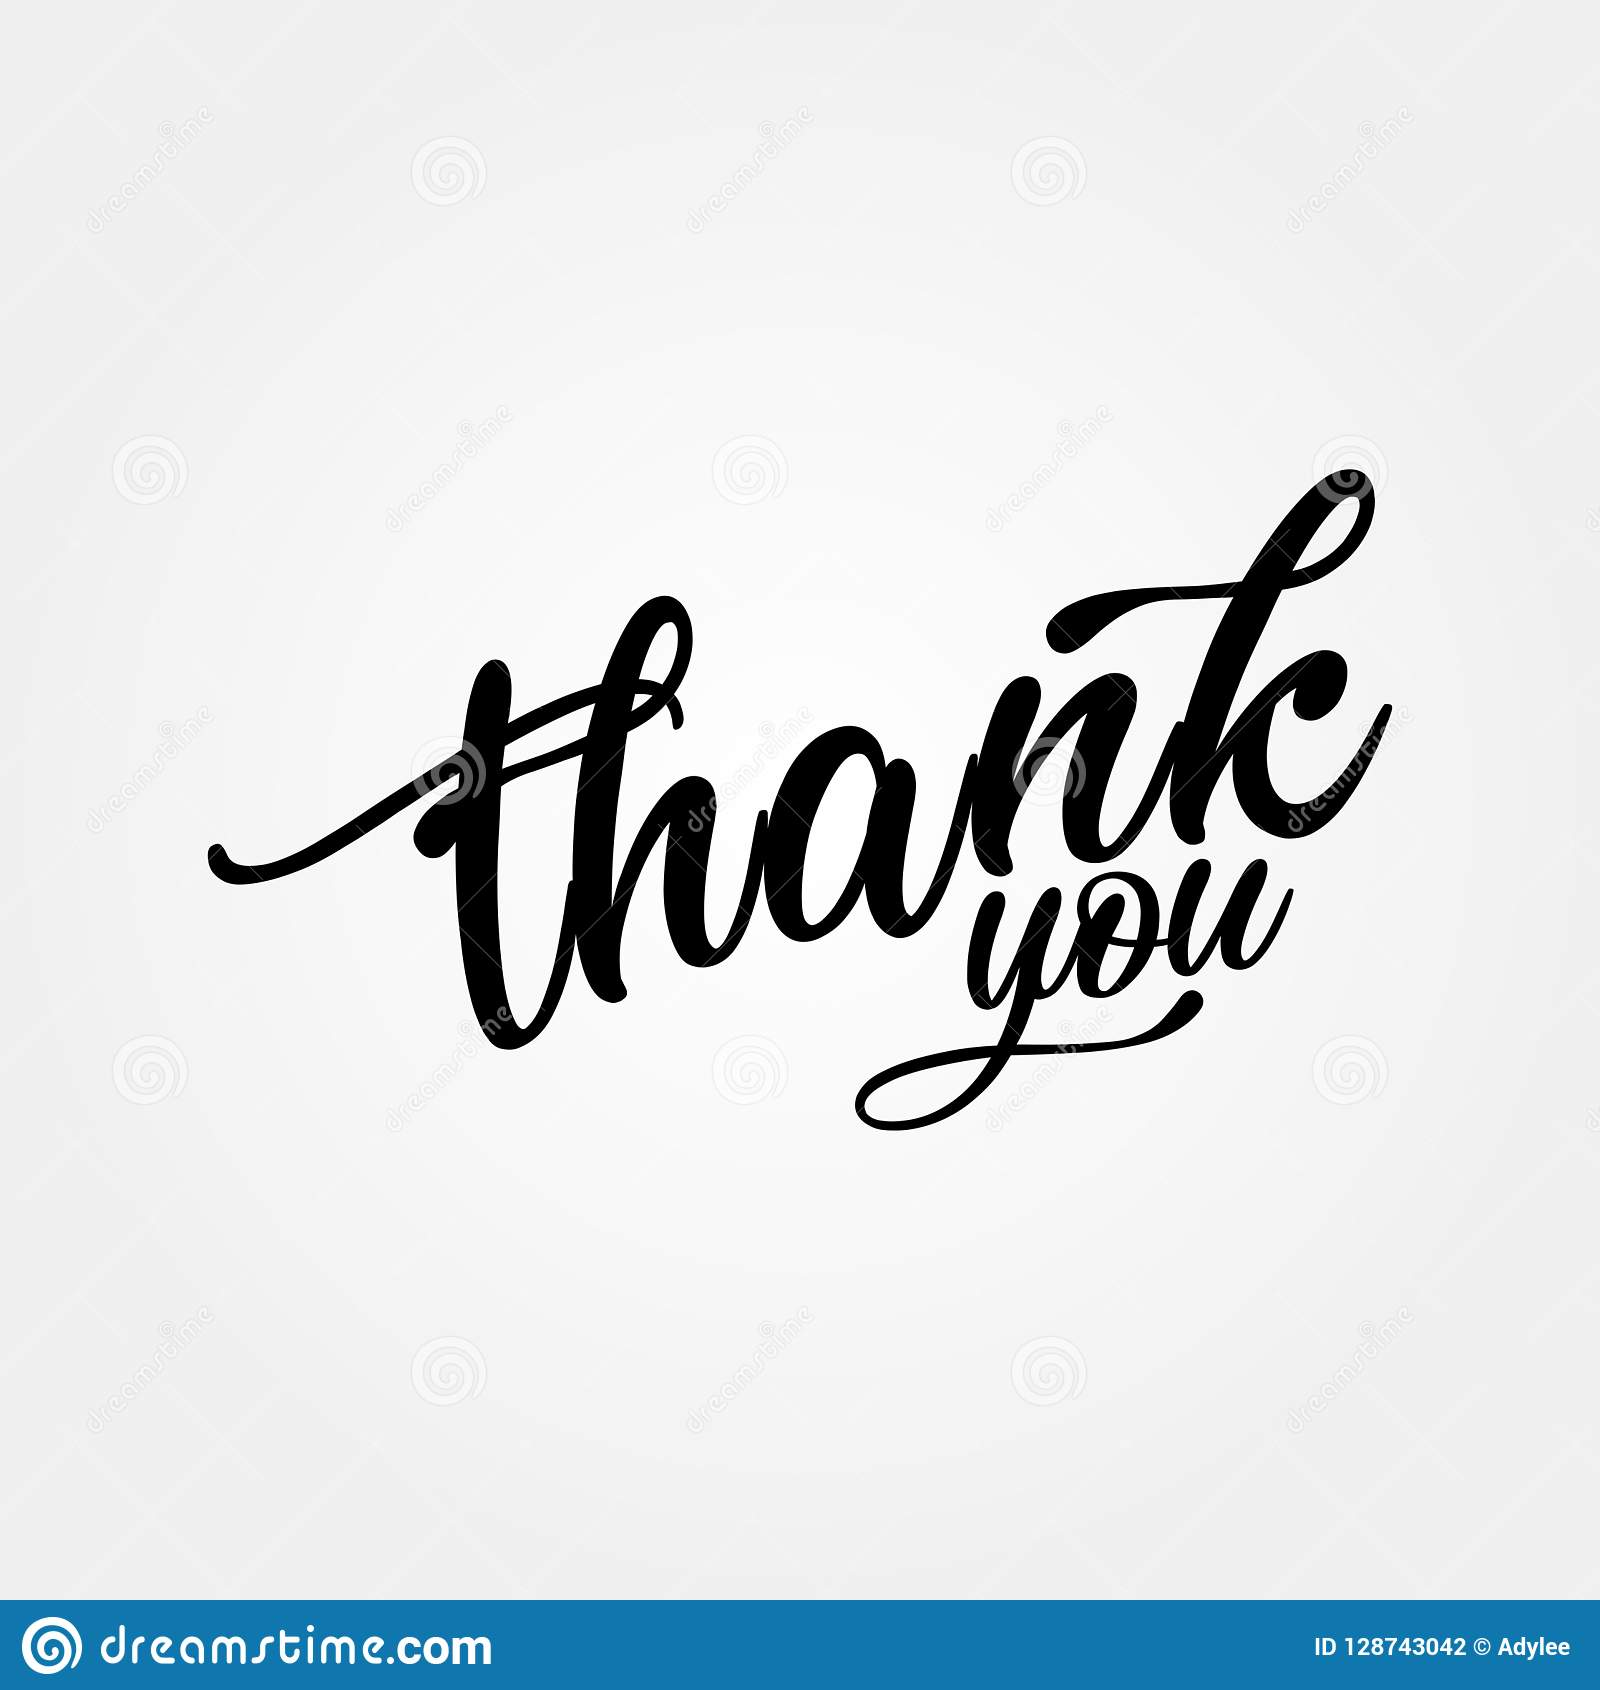 Stock Vector Thank You Handwritten Inscription Hand Drawn Lettering